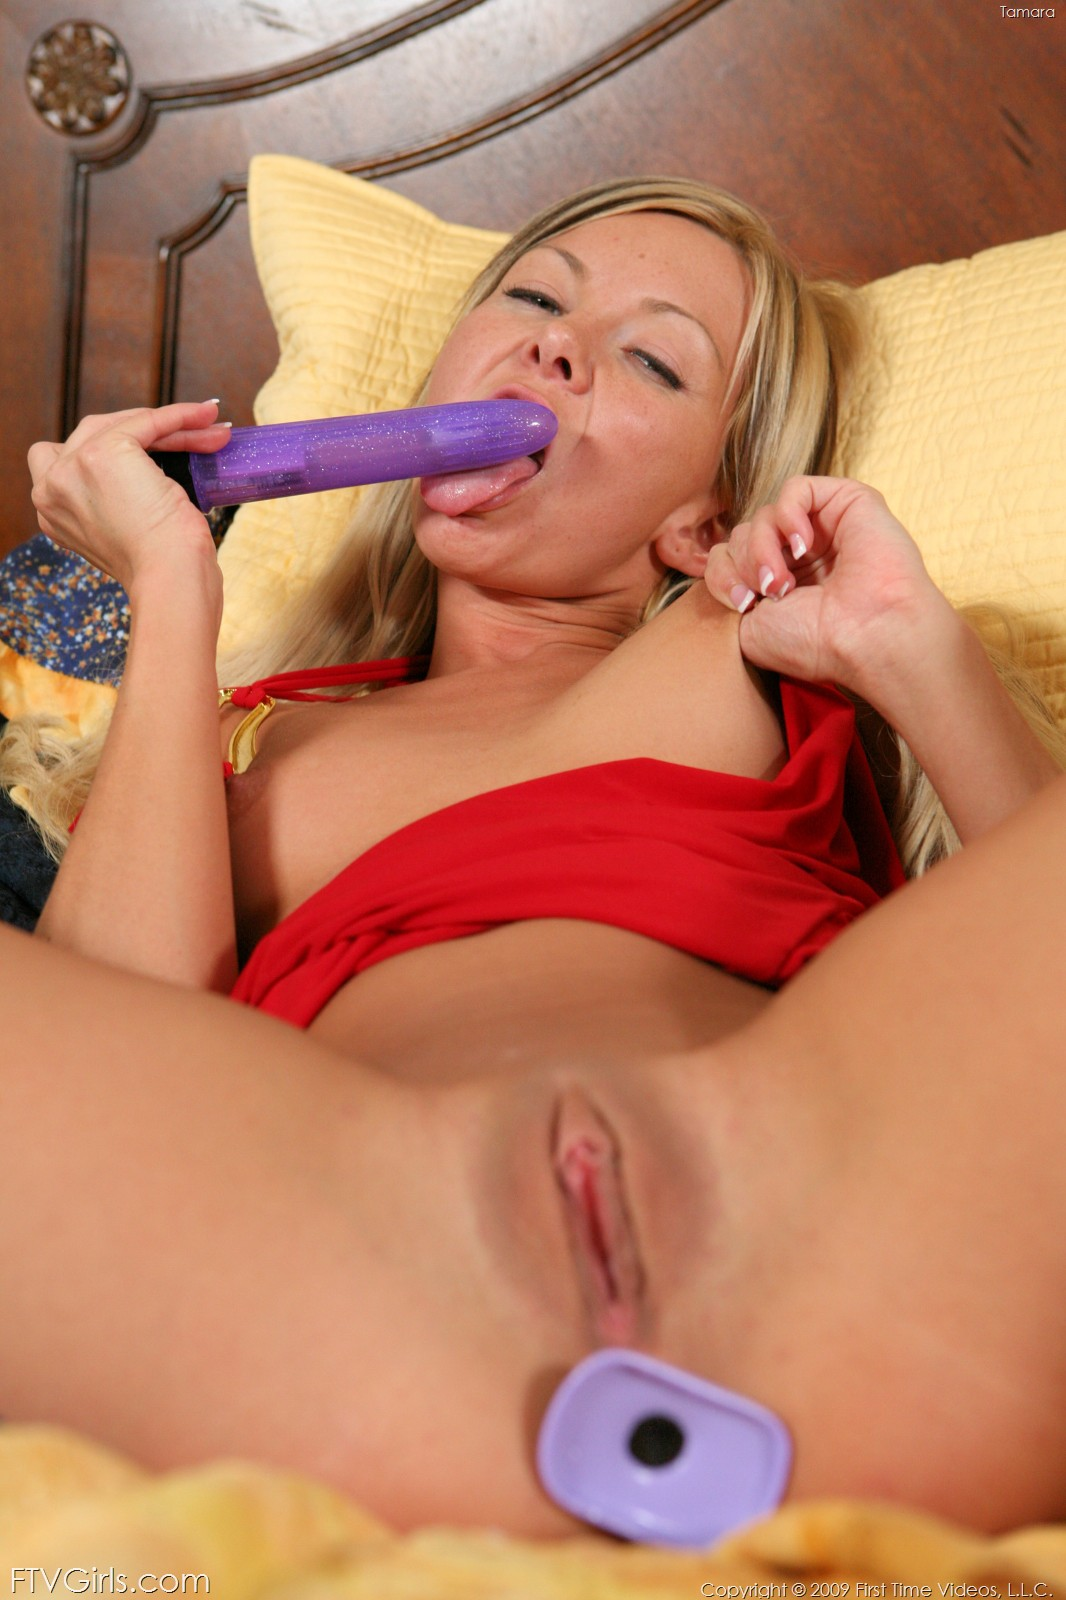 wpid-tamara-fucks-her-new-toy9.jpg